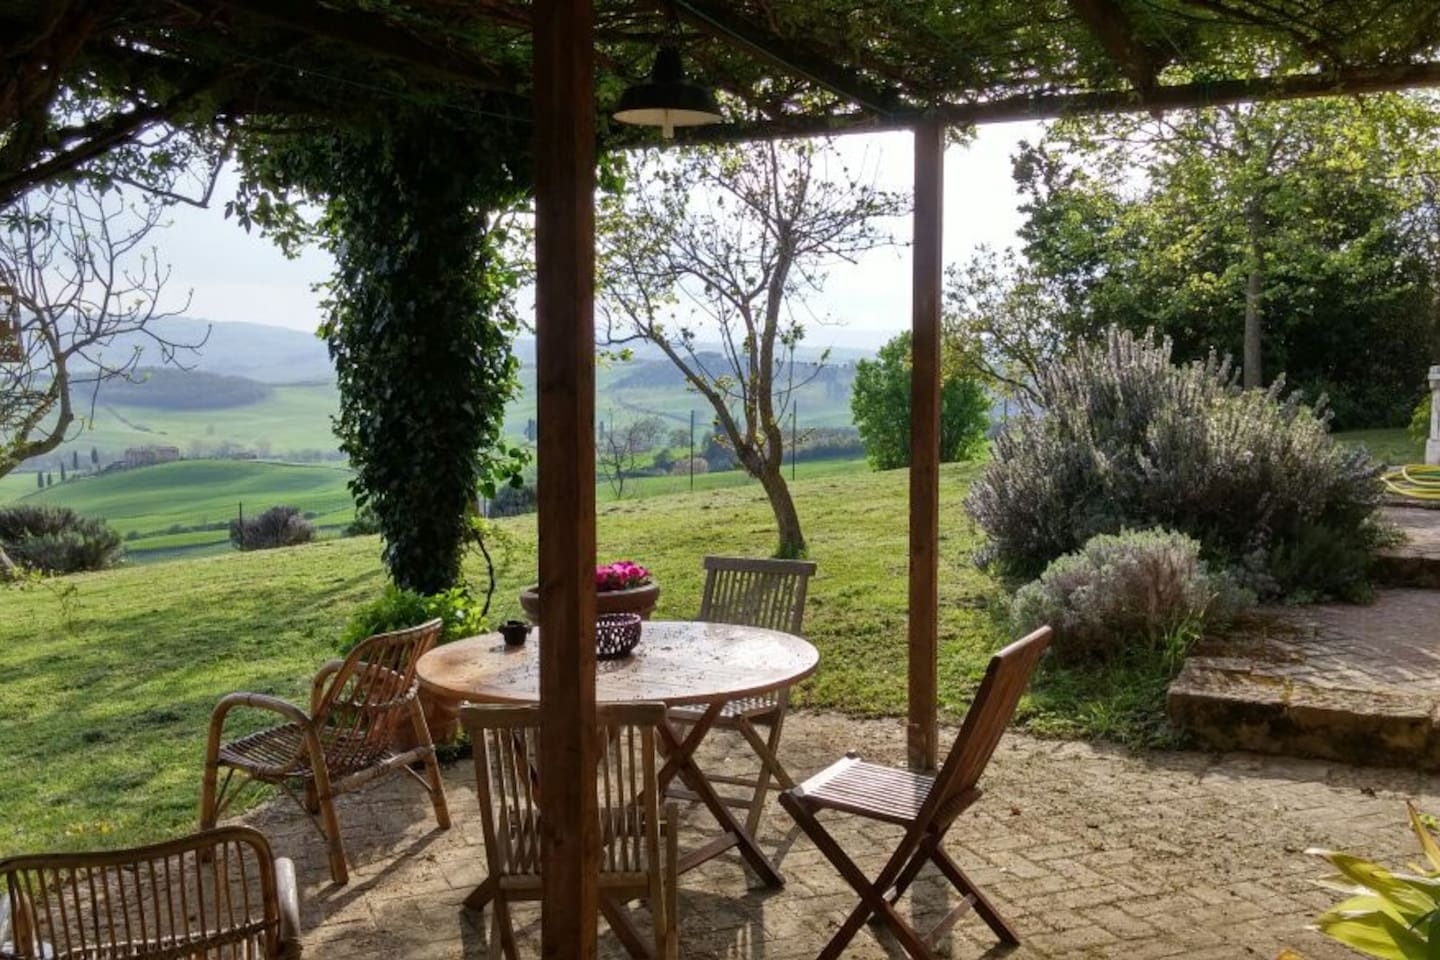 Pergola with table and chairs